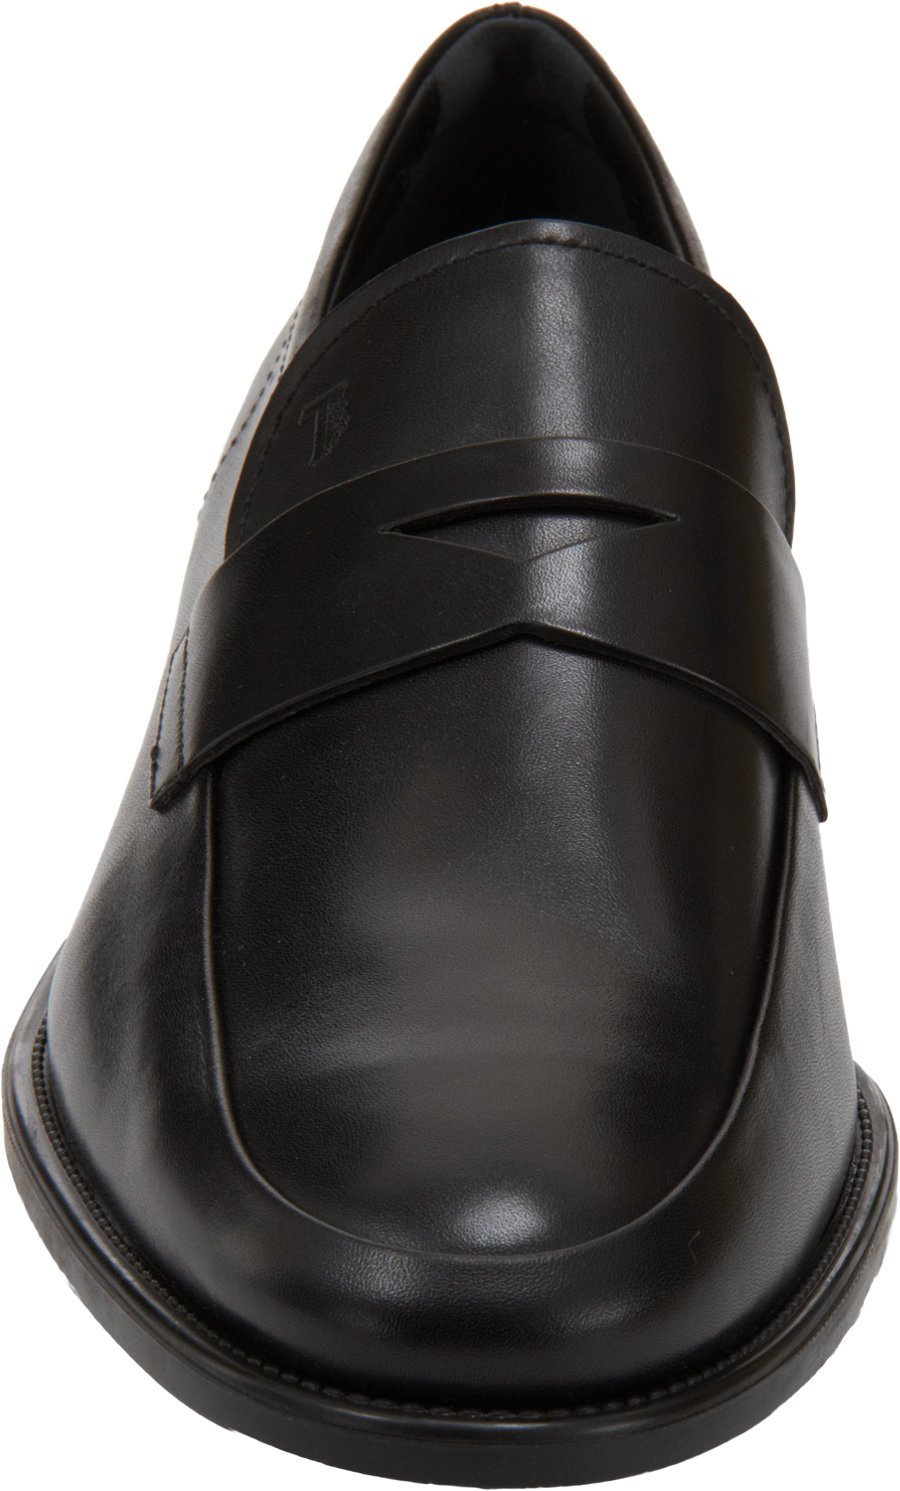 5b570c5464c Lyst - Tod s Fondo Gomma Penny Loafer in Black for Men